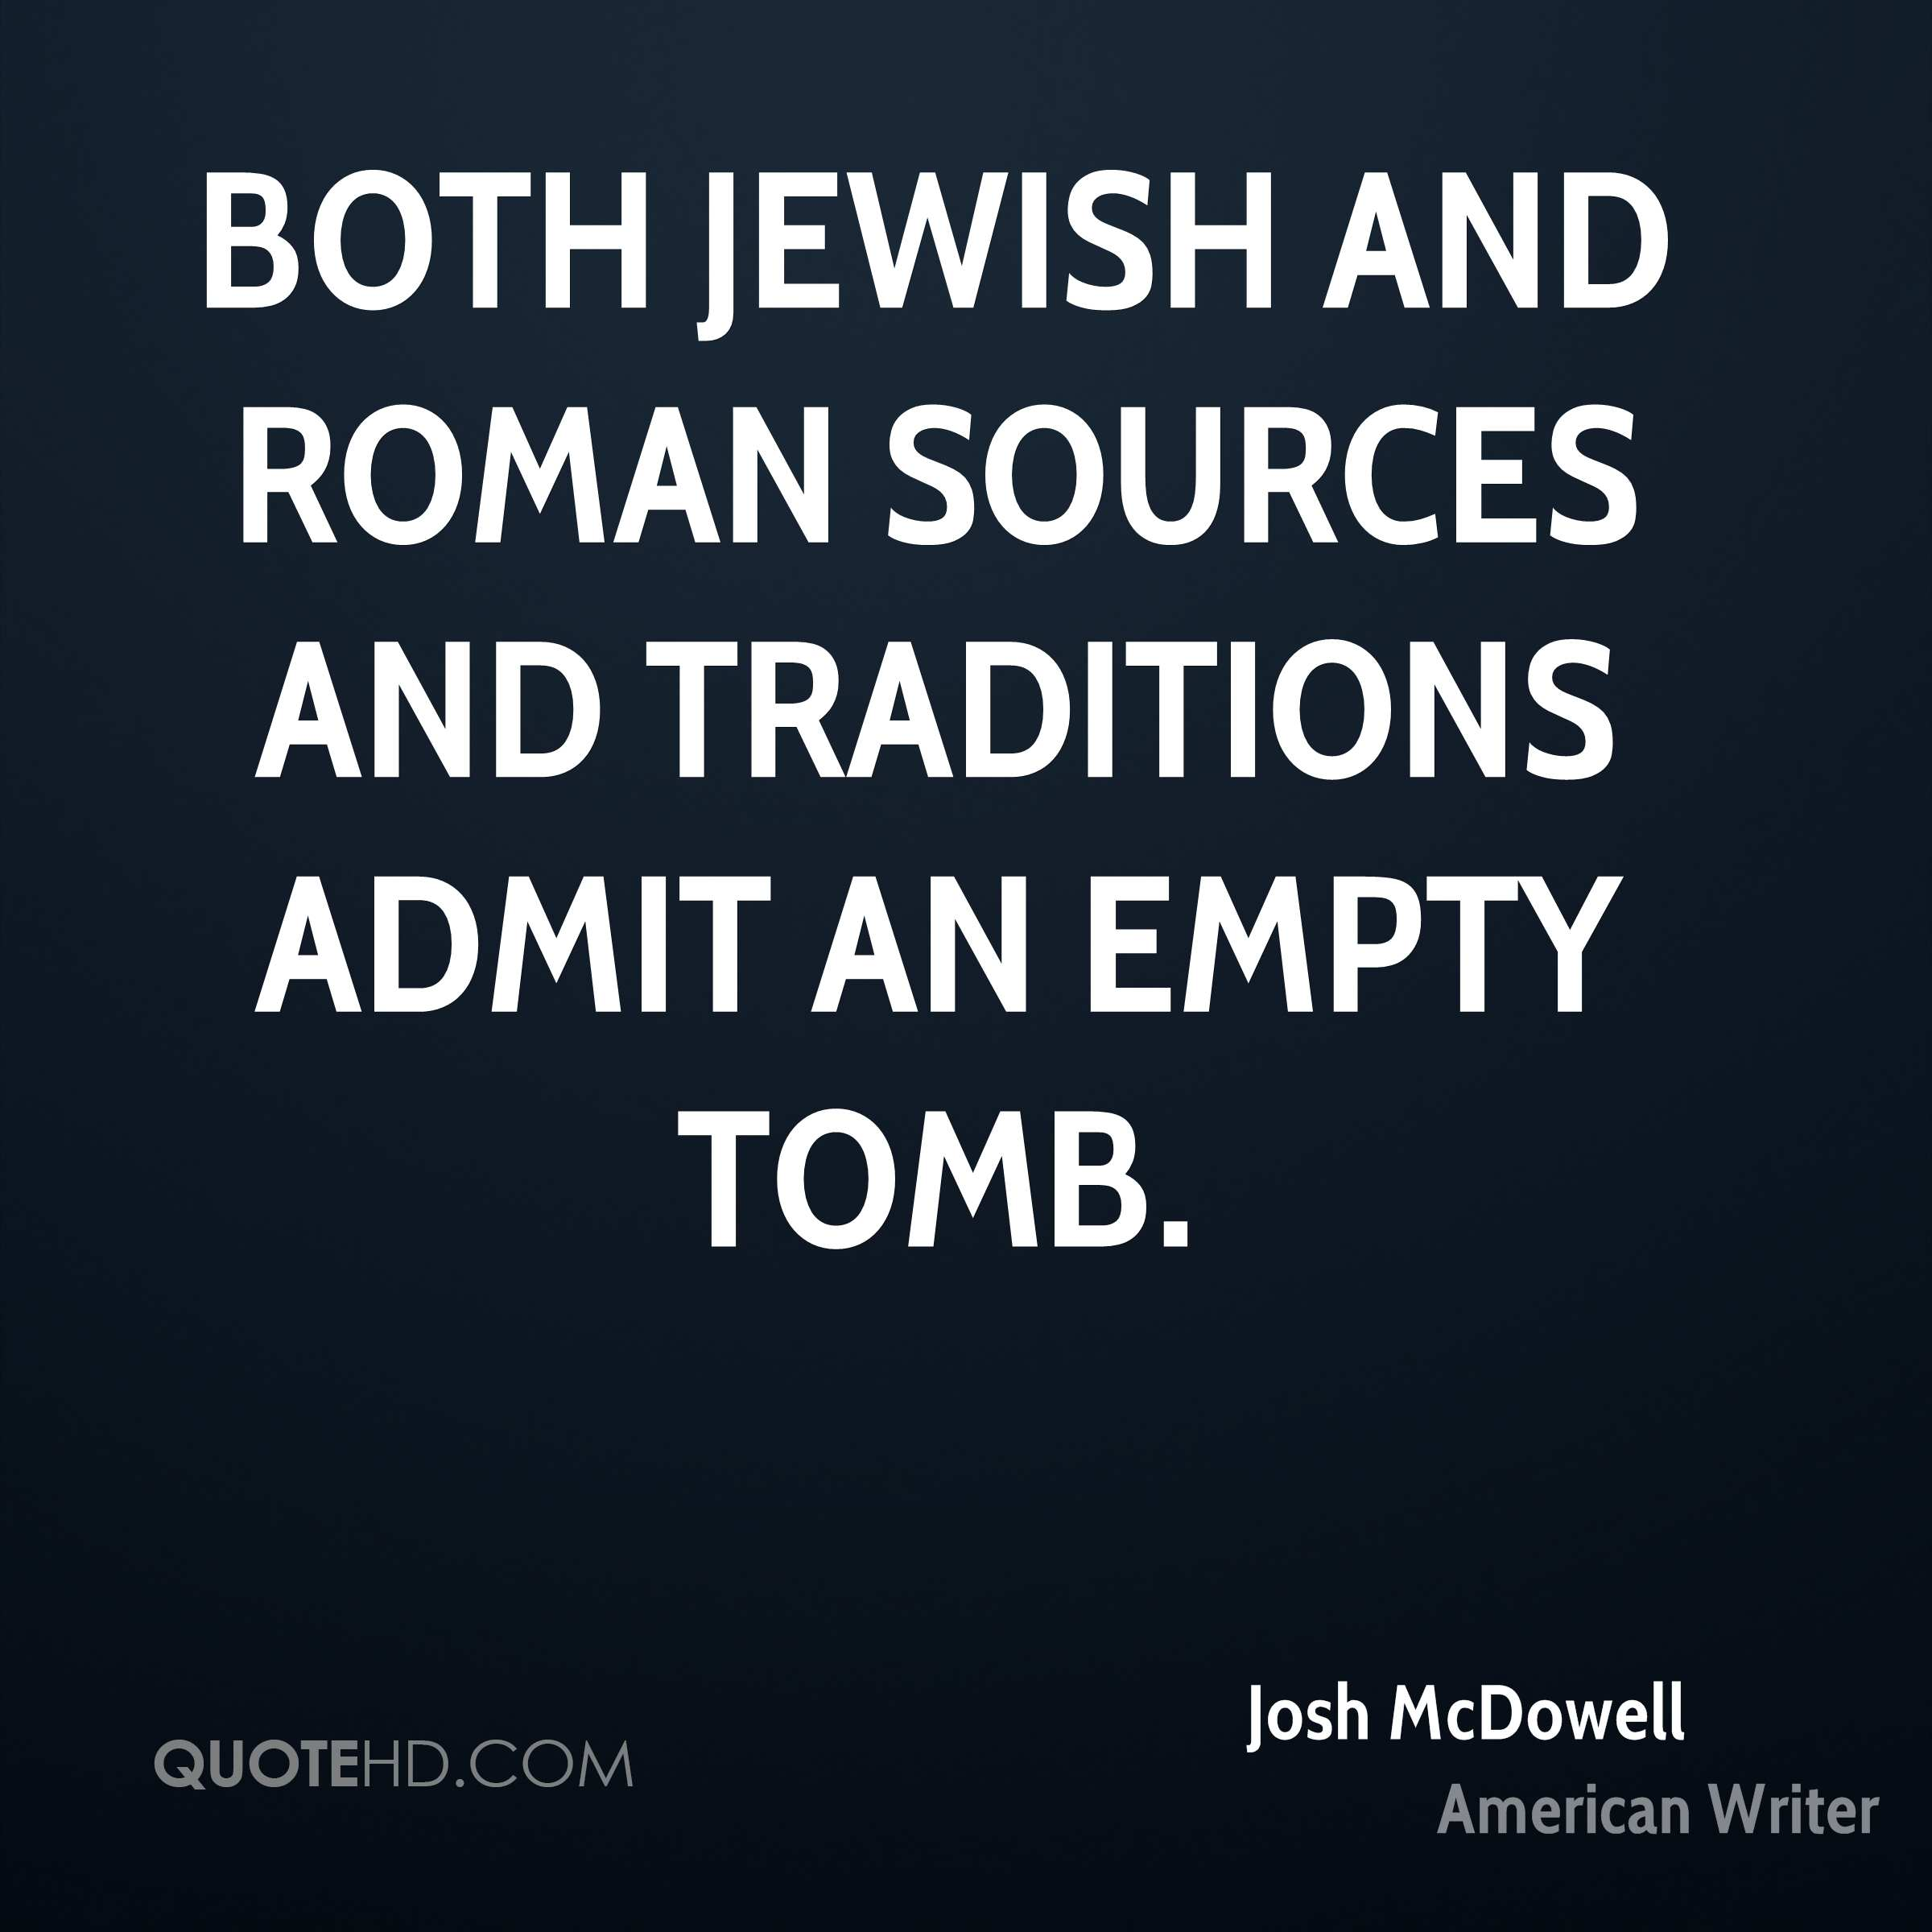 Both Jewish and Roman sources and traditions admit an empty tomb.